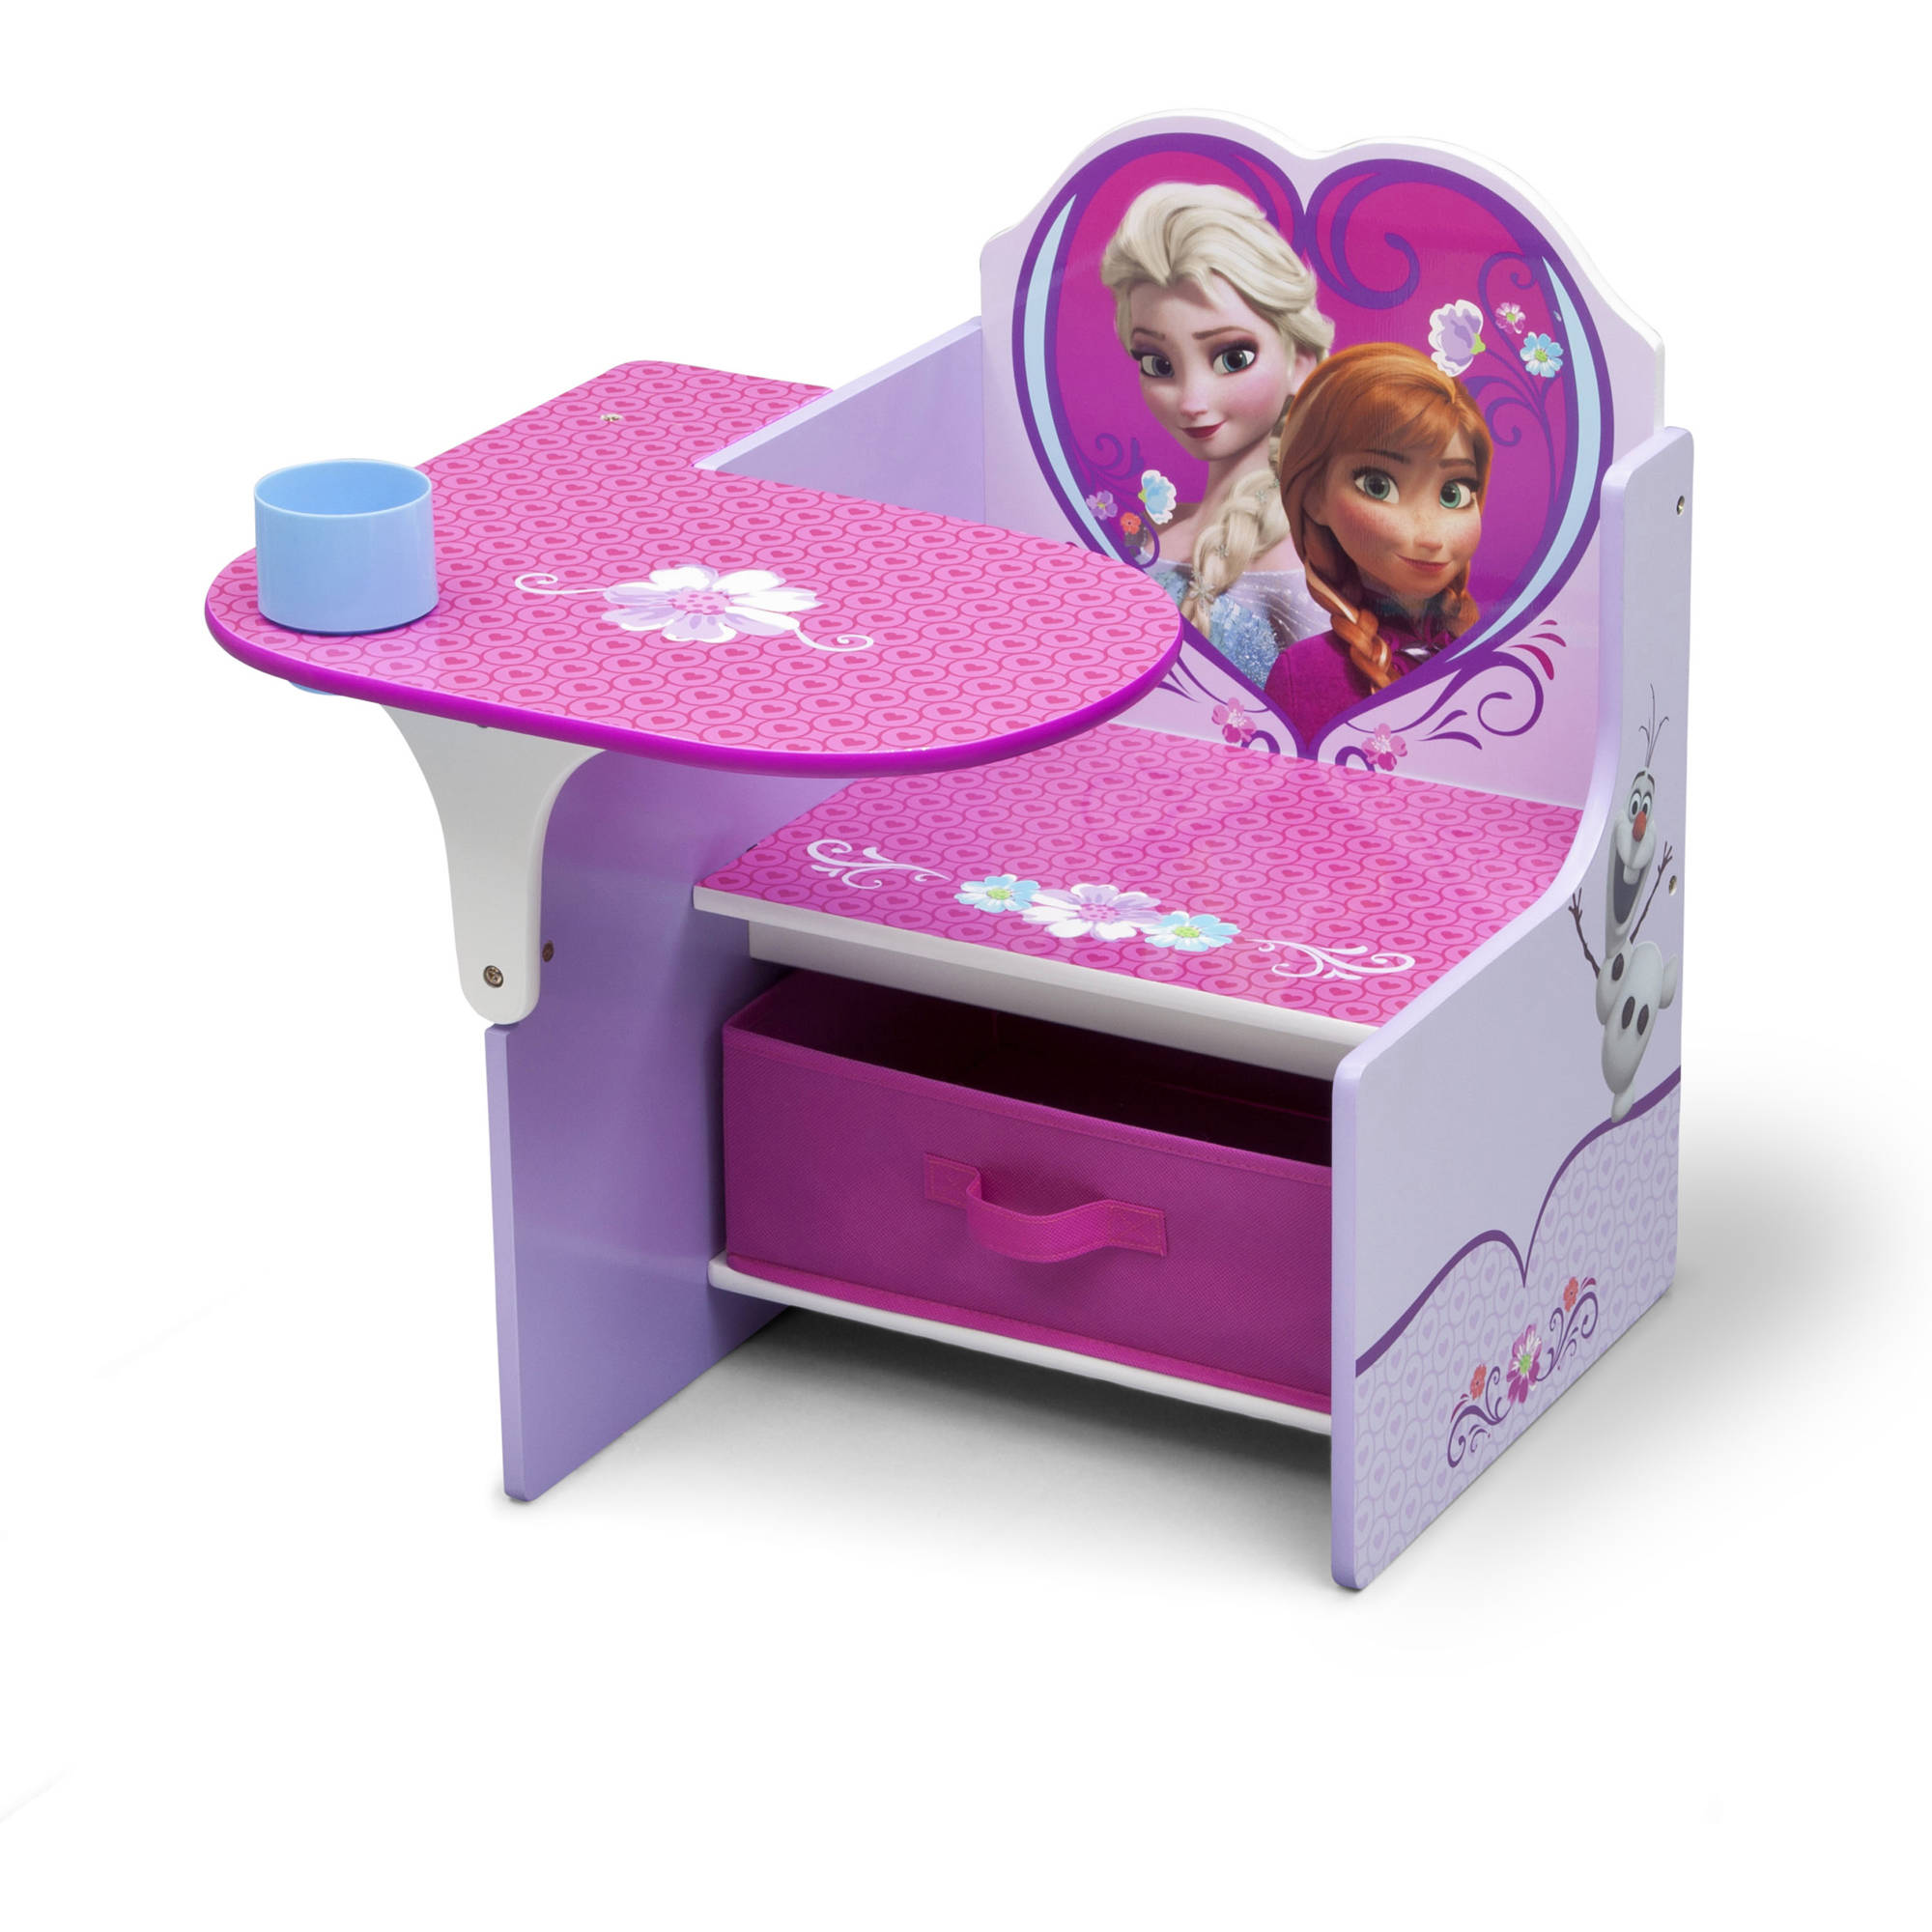 Magnificent Disney Frozen Chair Desk With Storage Bin By Delta Children Walmart Com Bralicious Painted Fabric Chair Ideas Braliciousco